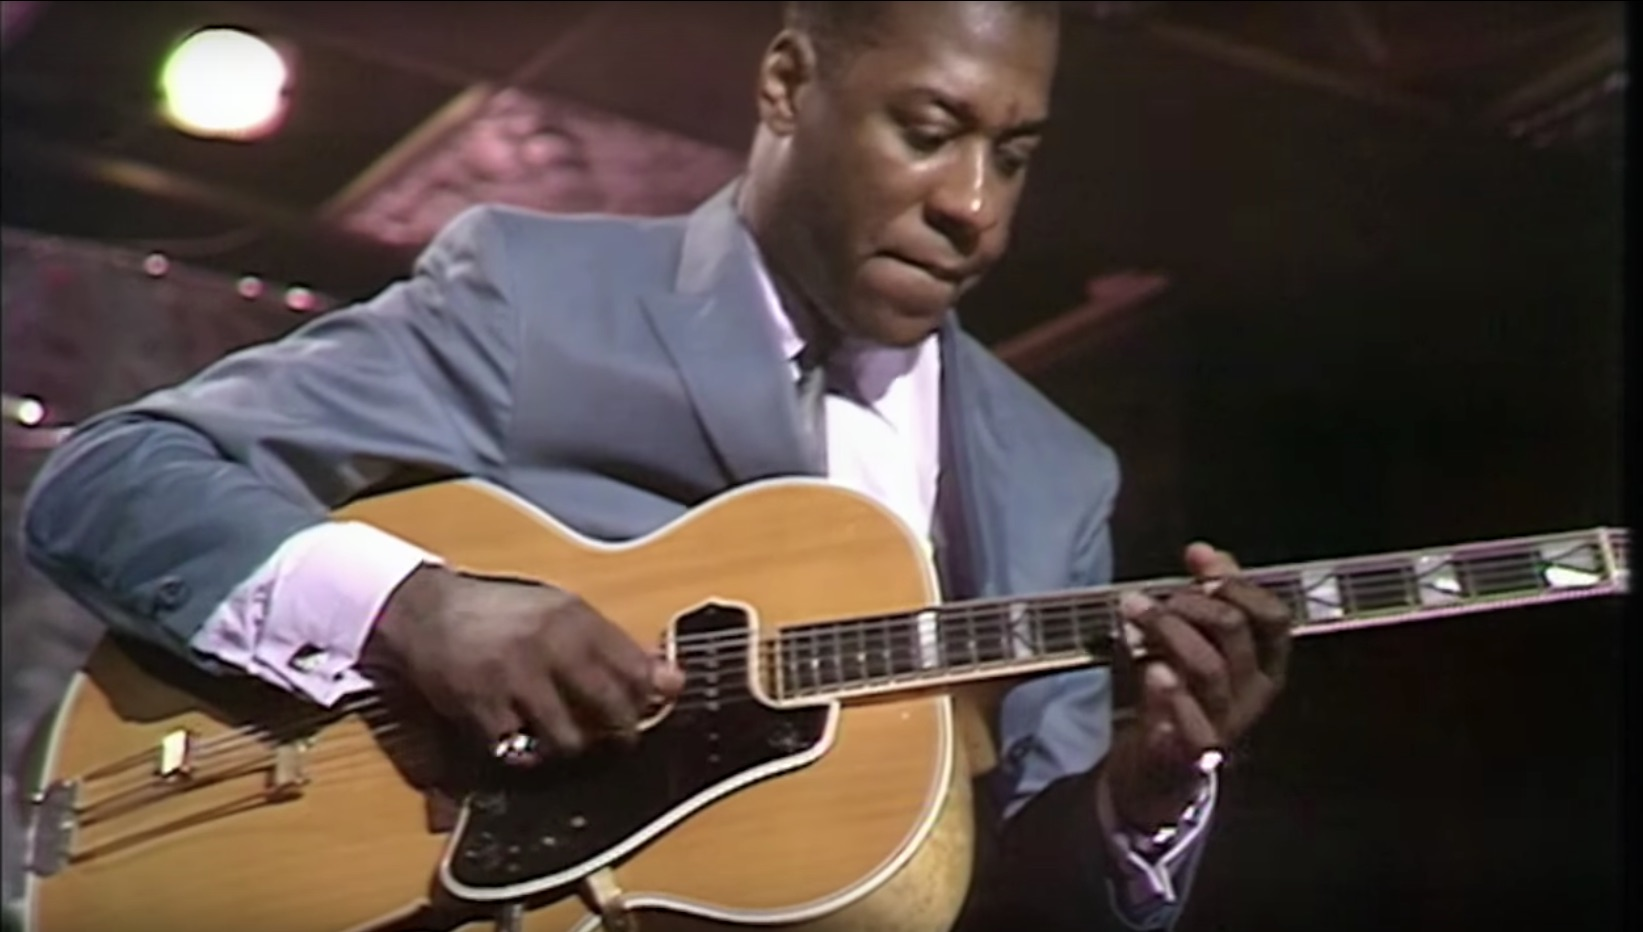 Unissued/Unreleased Grant Green - Page 6 - Re-issues - organissimo forums